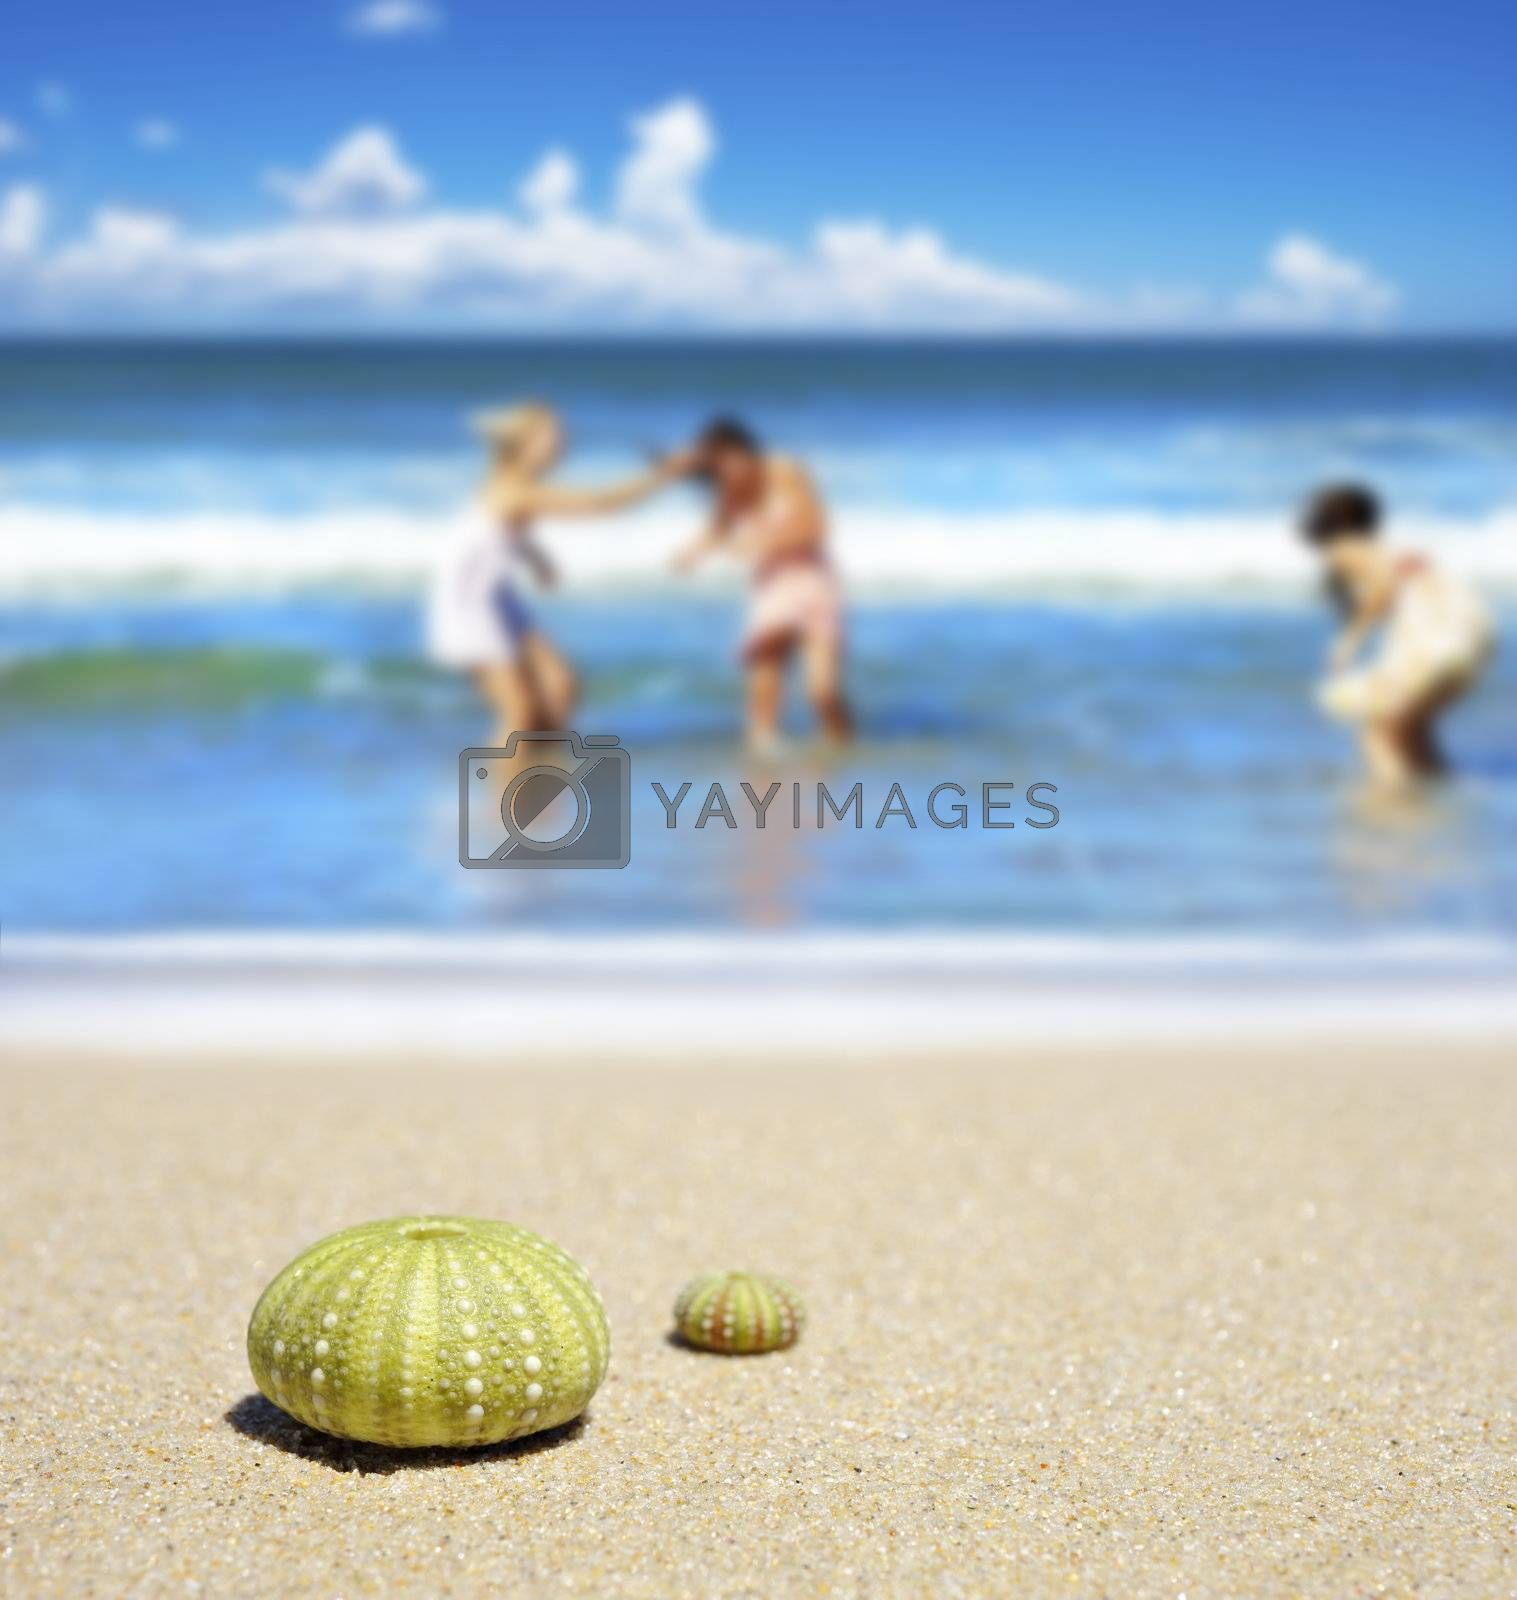 Beach scene with two dead sea urchin shells and girls playing in the waves